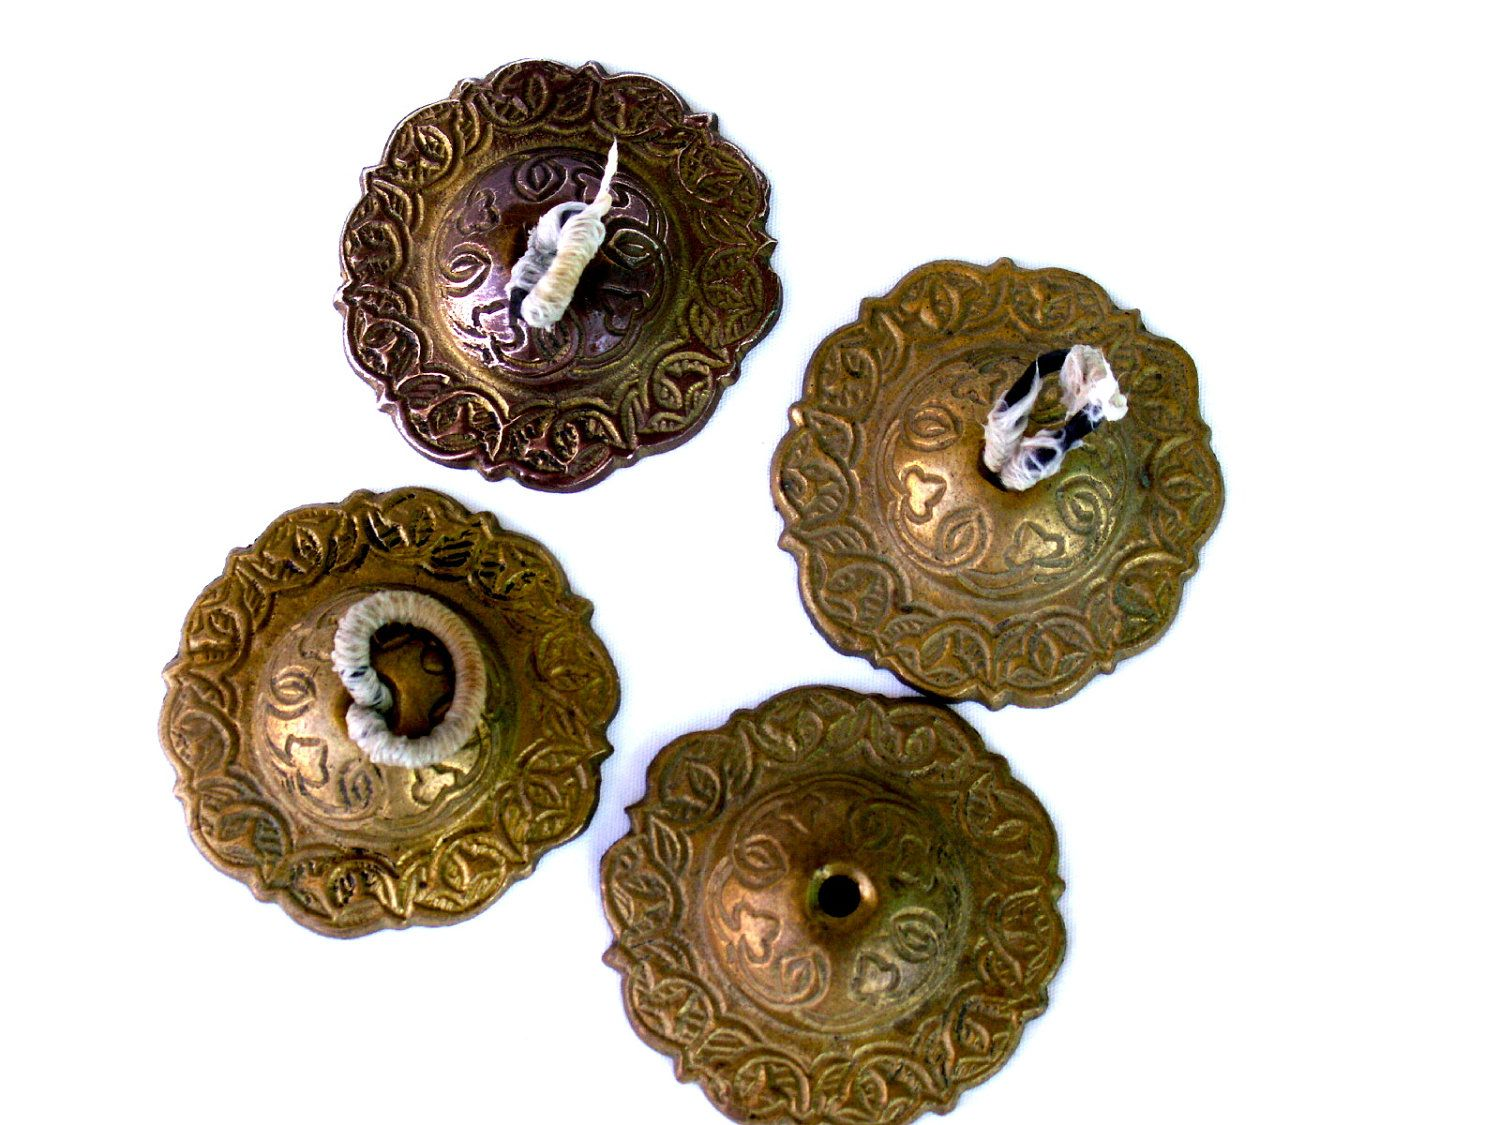 SOLD  Vintage belly dancer Brass Zills FINGER CYMBALS